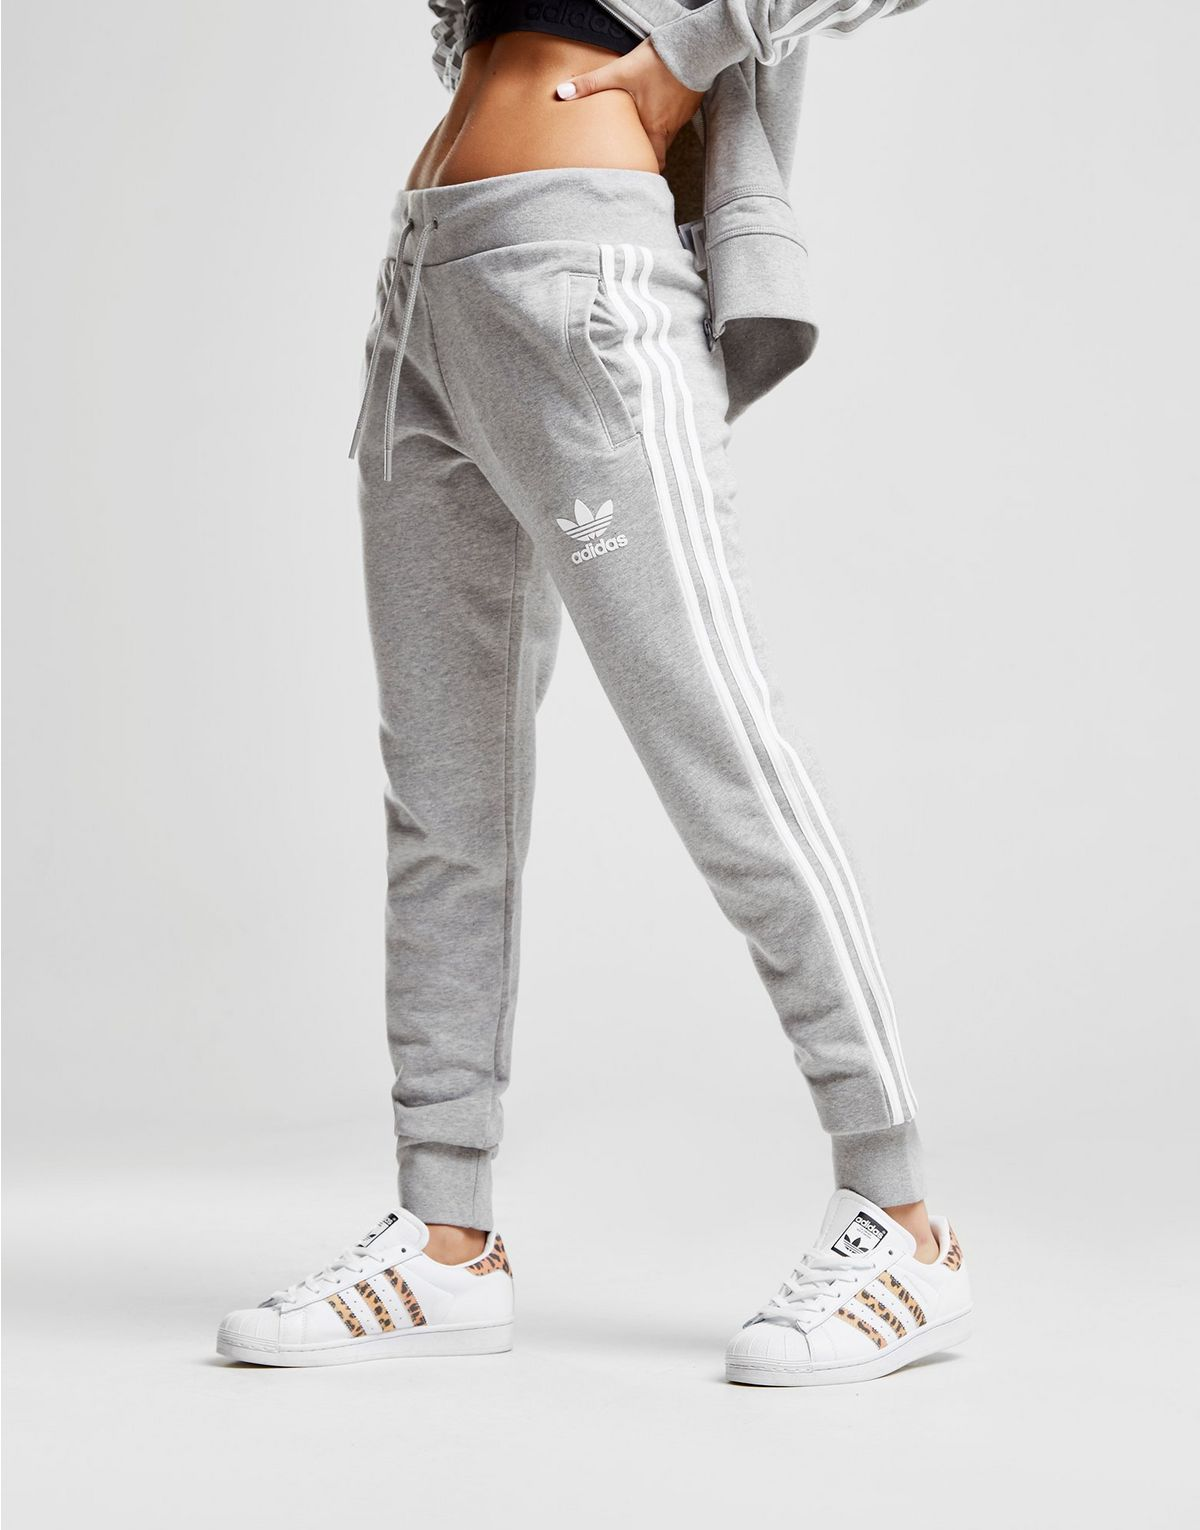 80566a42b426 adidas Originals 3-Stripes California Fleece Pants